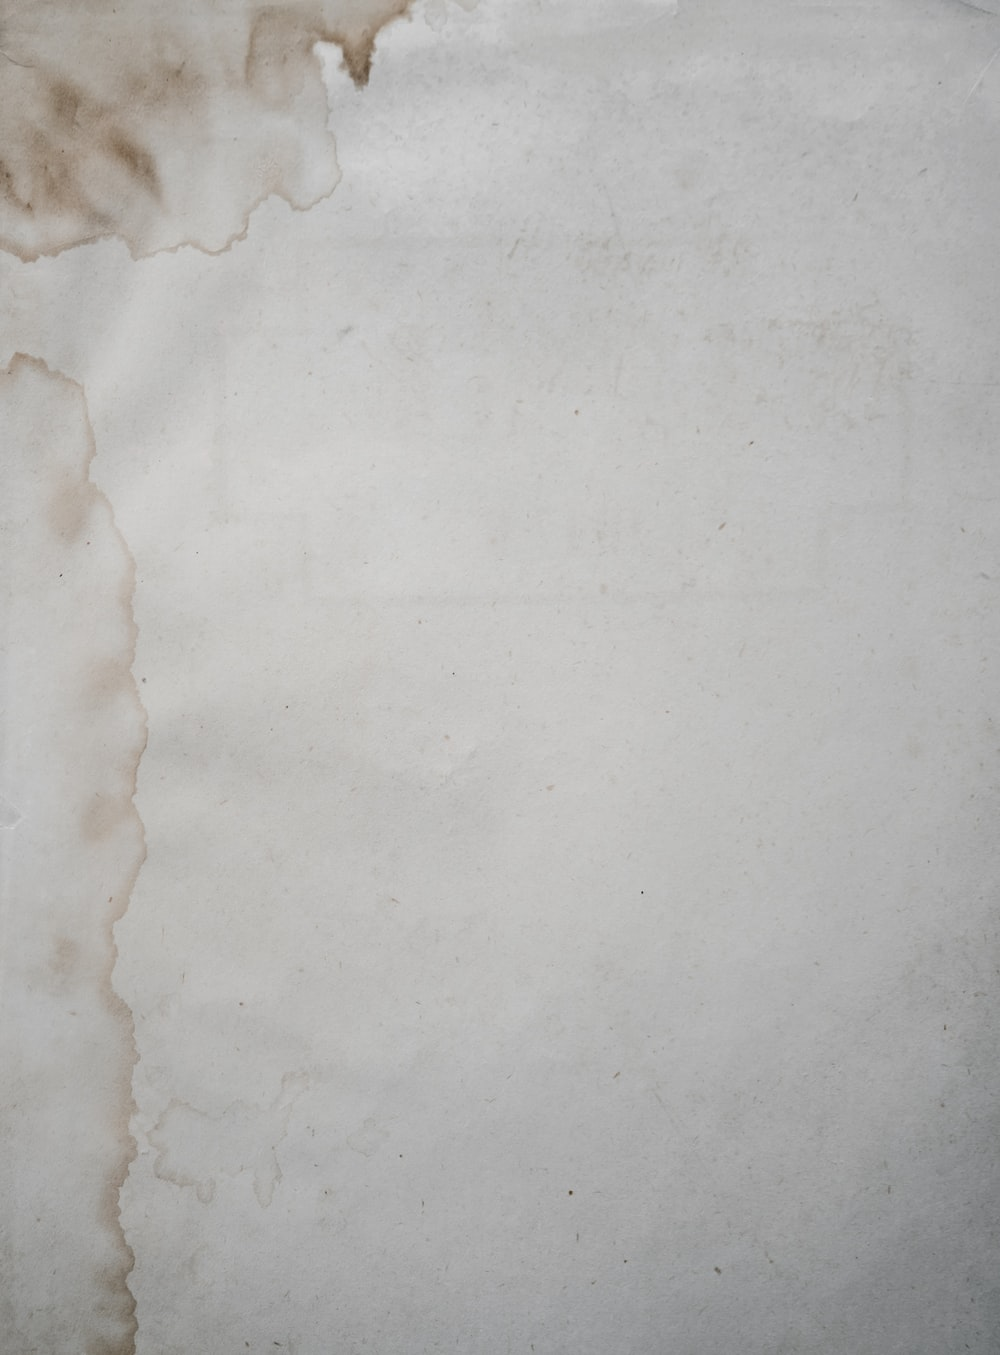 white cloth with stain